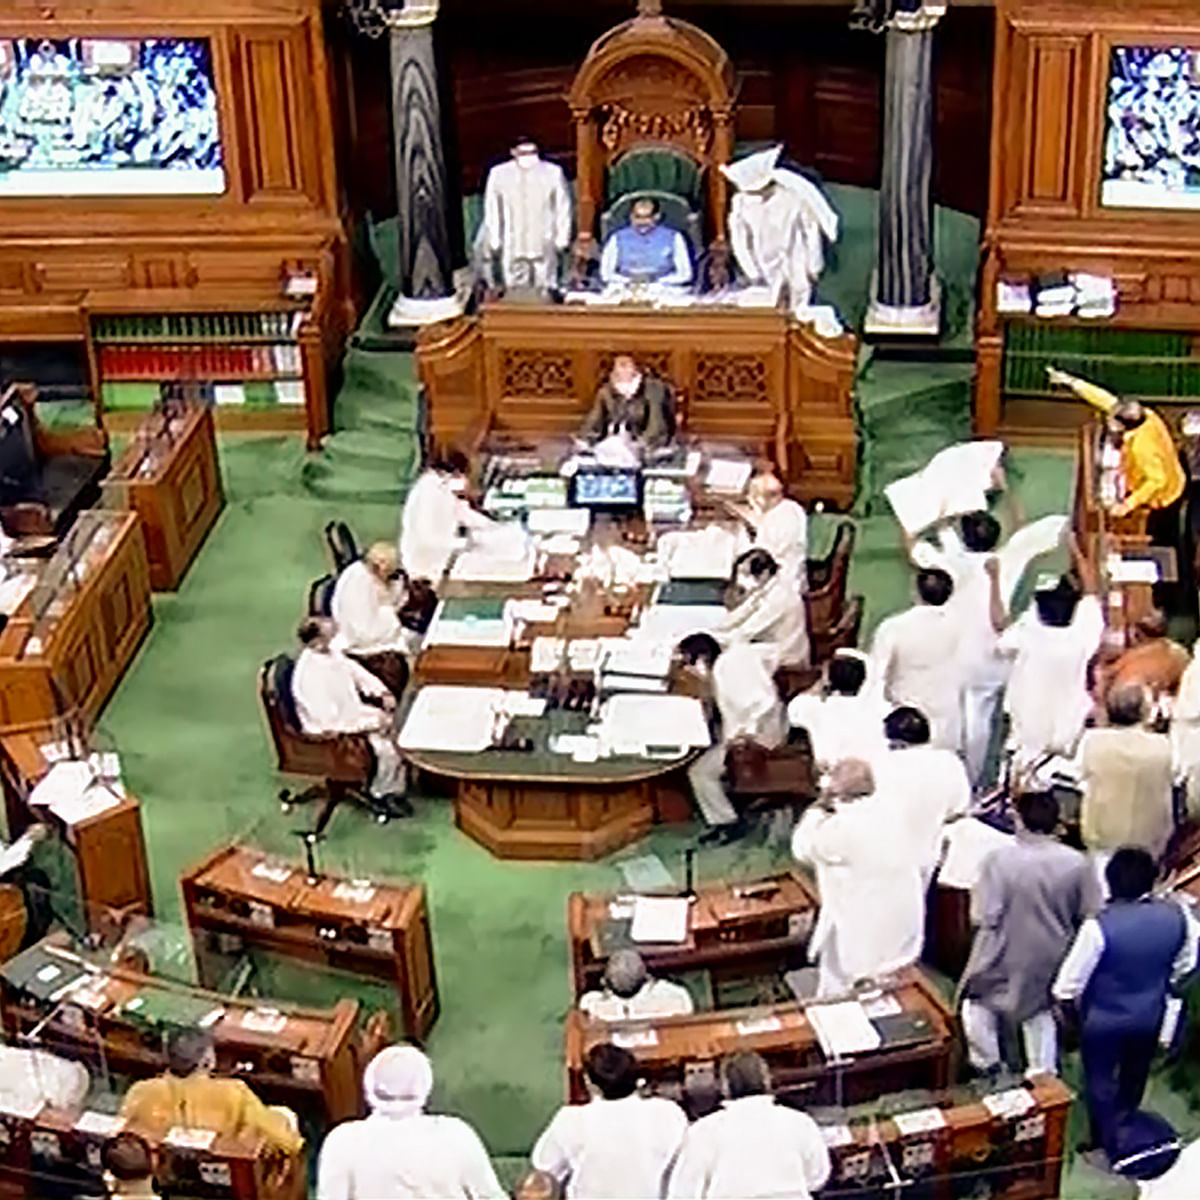 Parliament Monsoon Session Live Updates: Two Congress MPs give adjournment motion notice in Lok Sabha over Pegasus issue